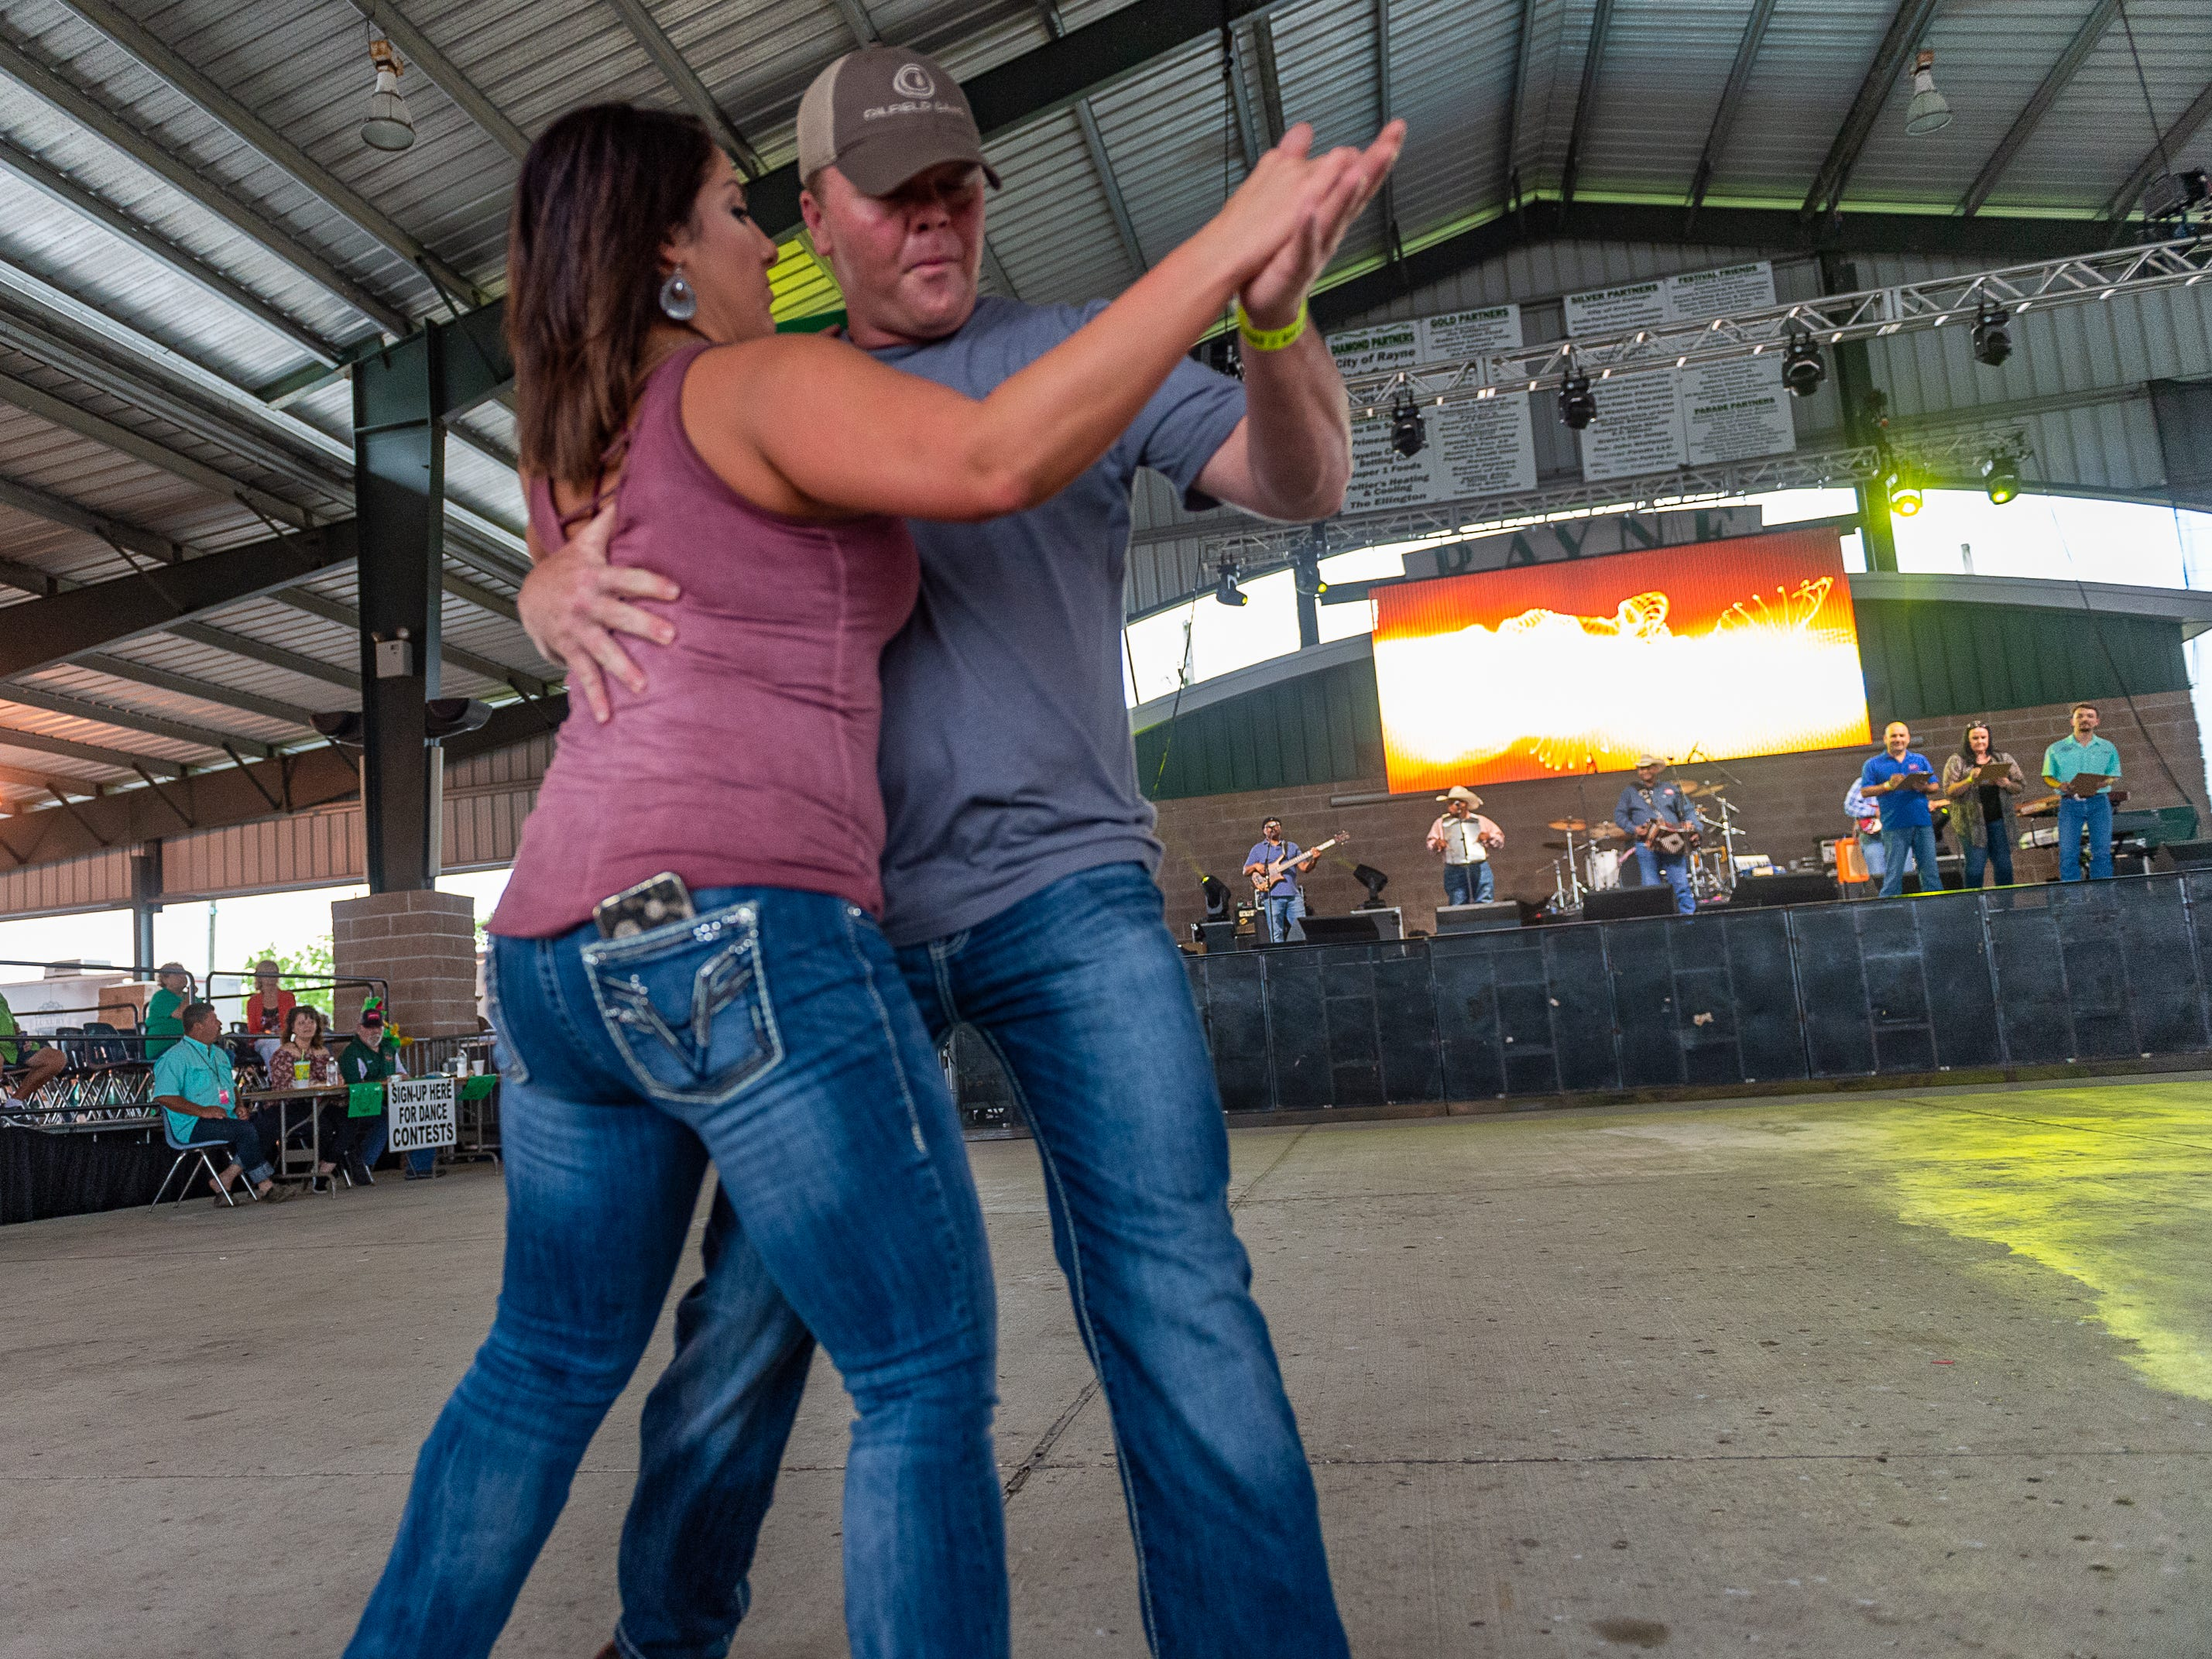 Jason and Renee Broussard win the waltz dance contest at The Rayne Frog Festival features music, food and events. Friday, May 10, 2019.